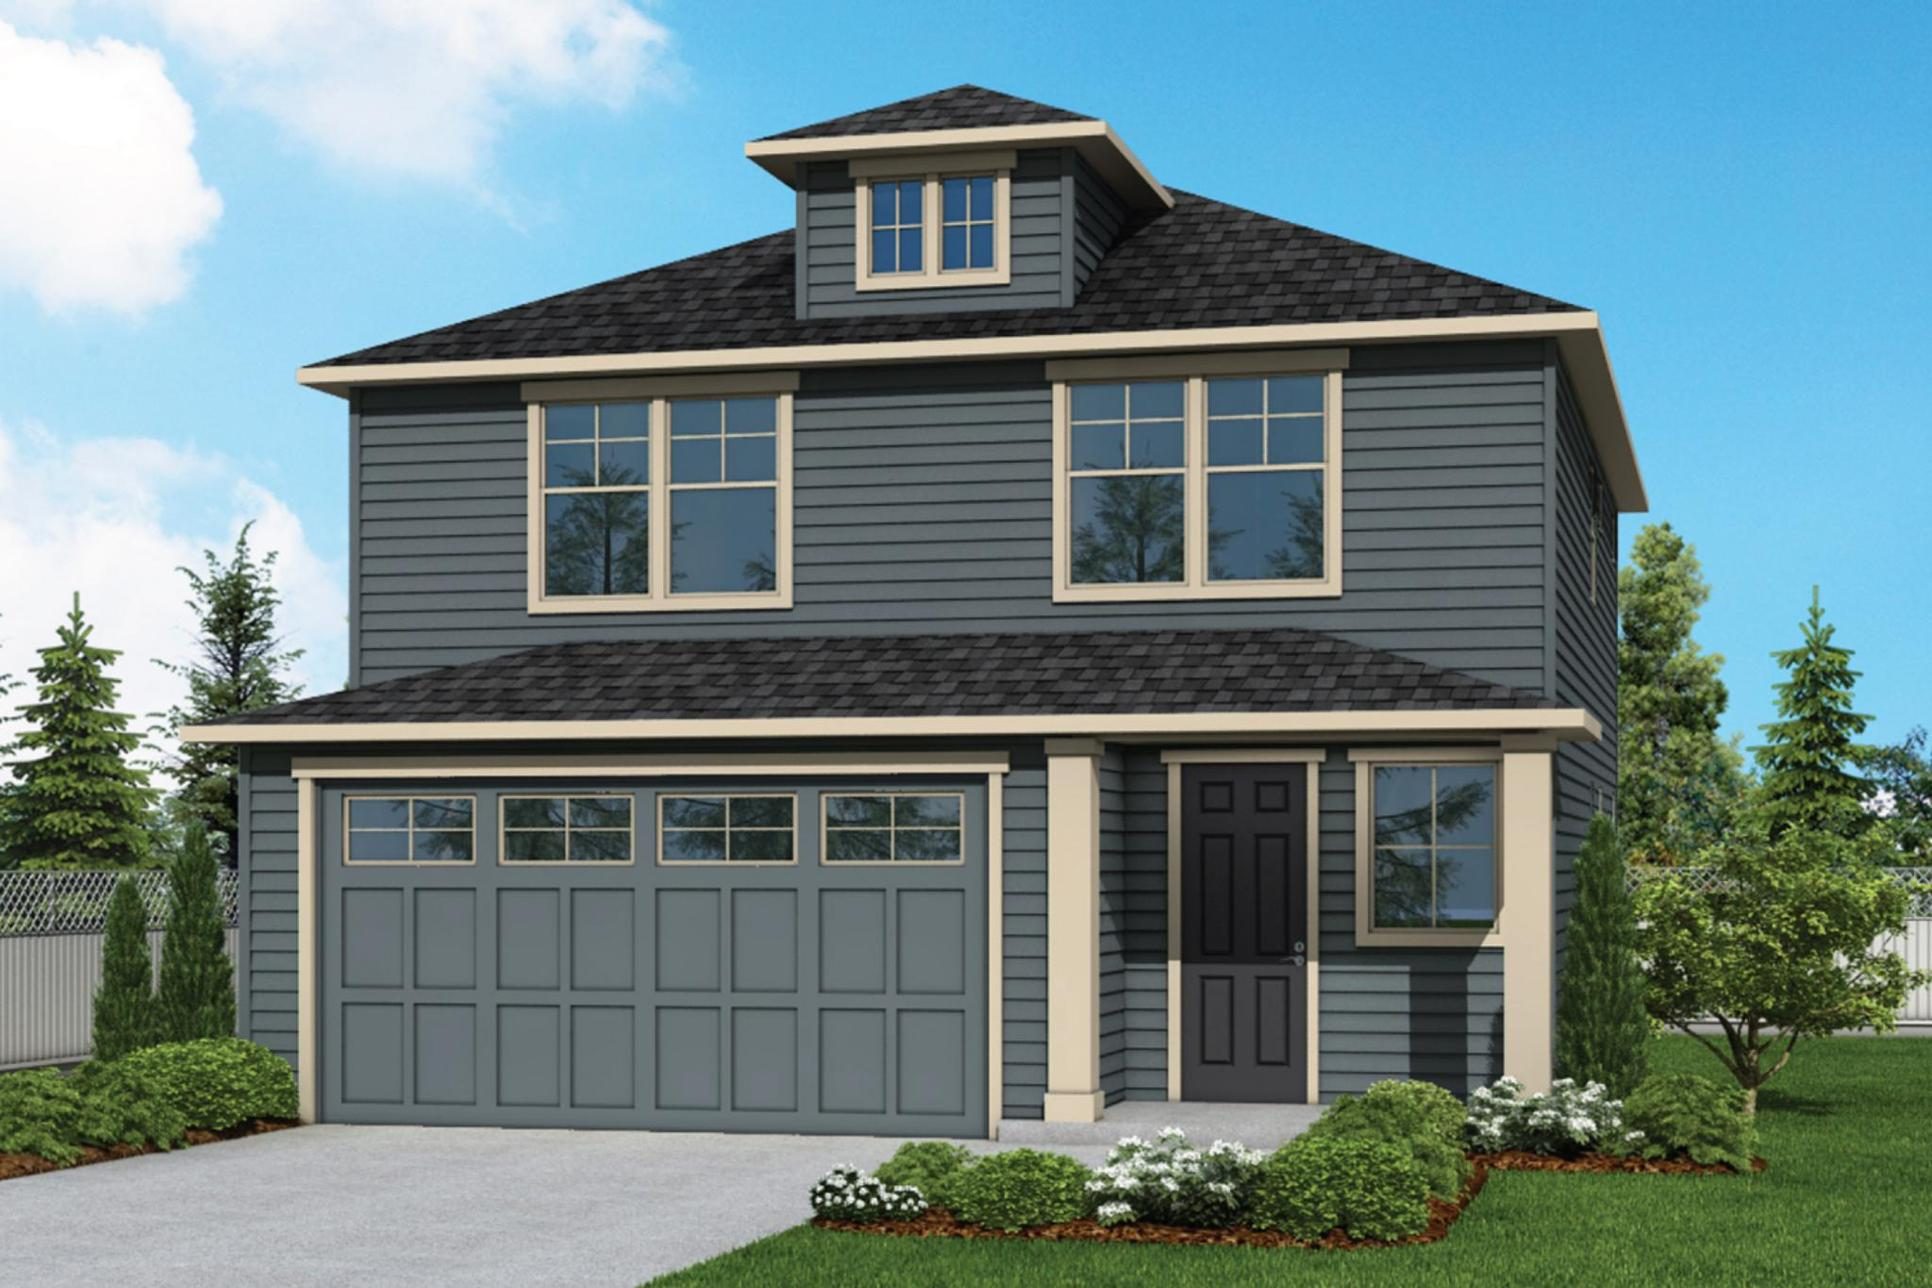 Plan 1867 Elevation 2 Rendering by Aho Construction:Plan 1867 Elevation 2